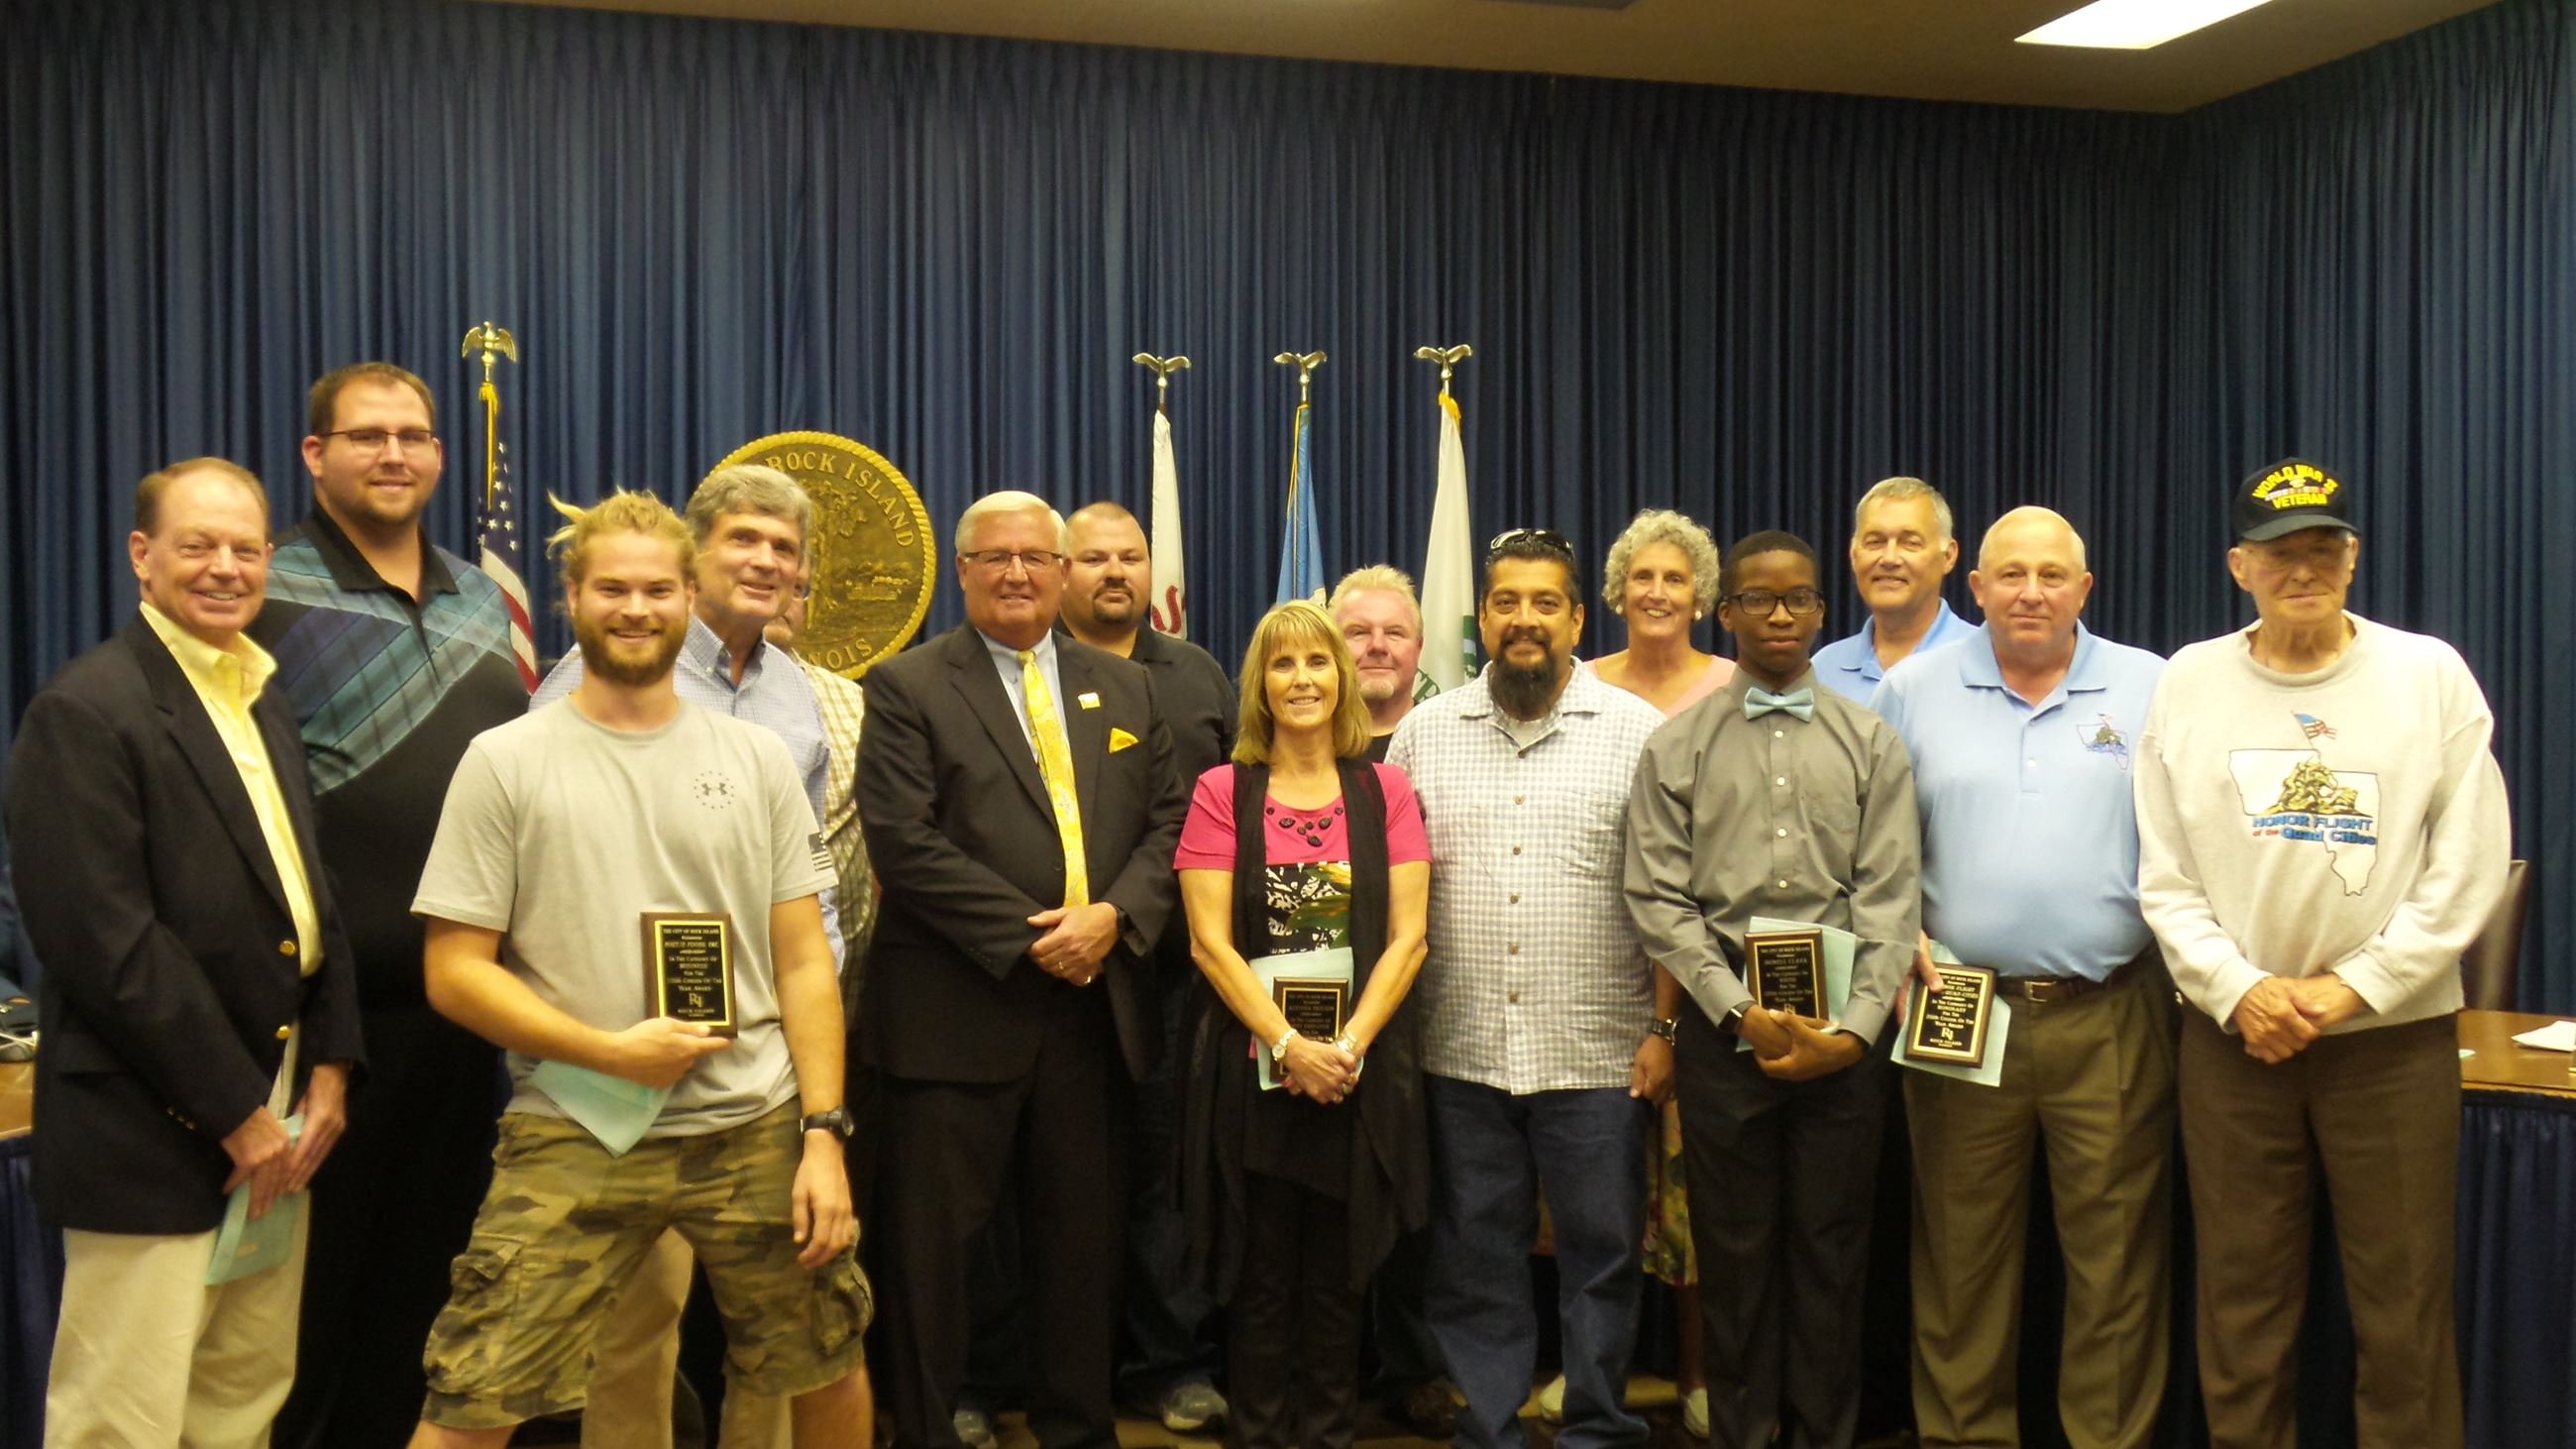 2016  Rock Island Citizens of the Year Award Winners with Mayor Pauley